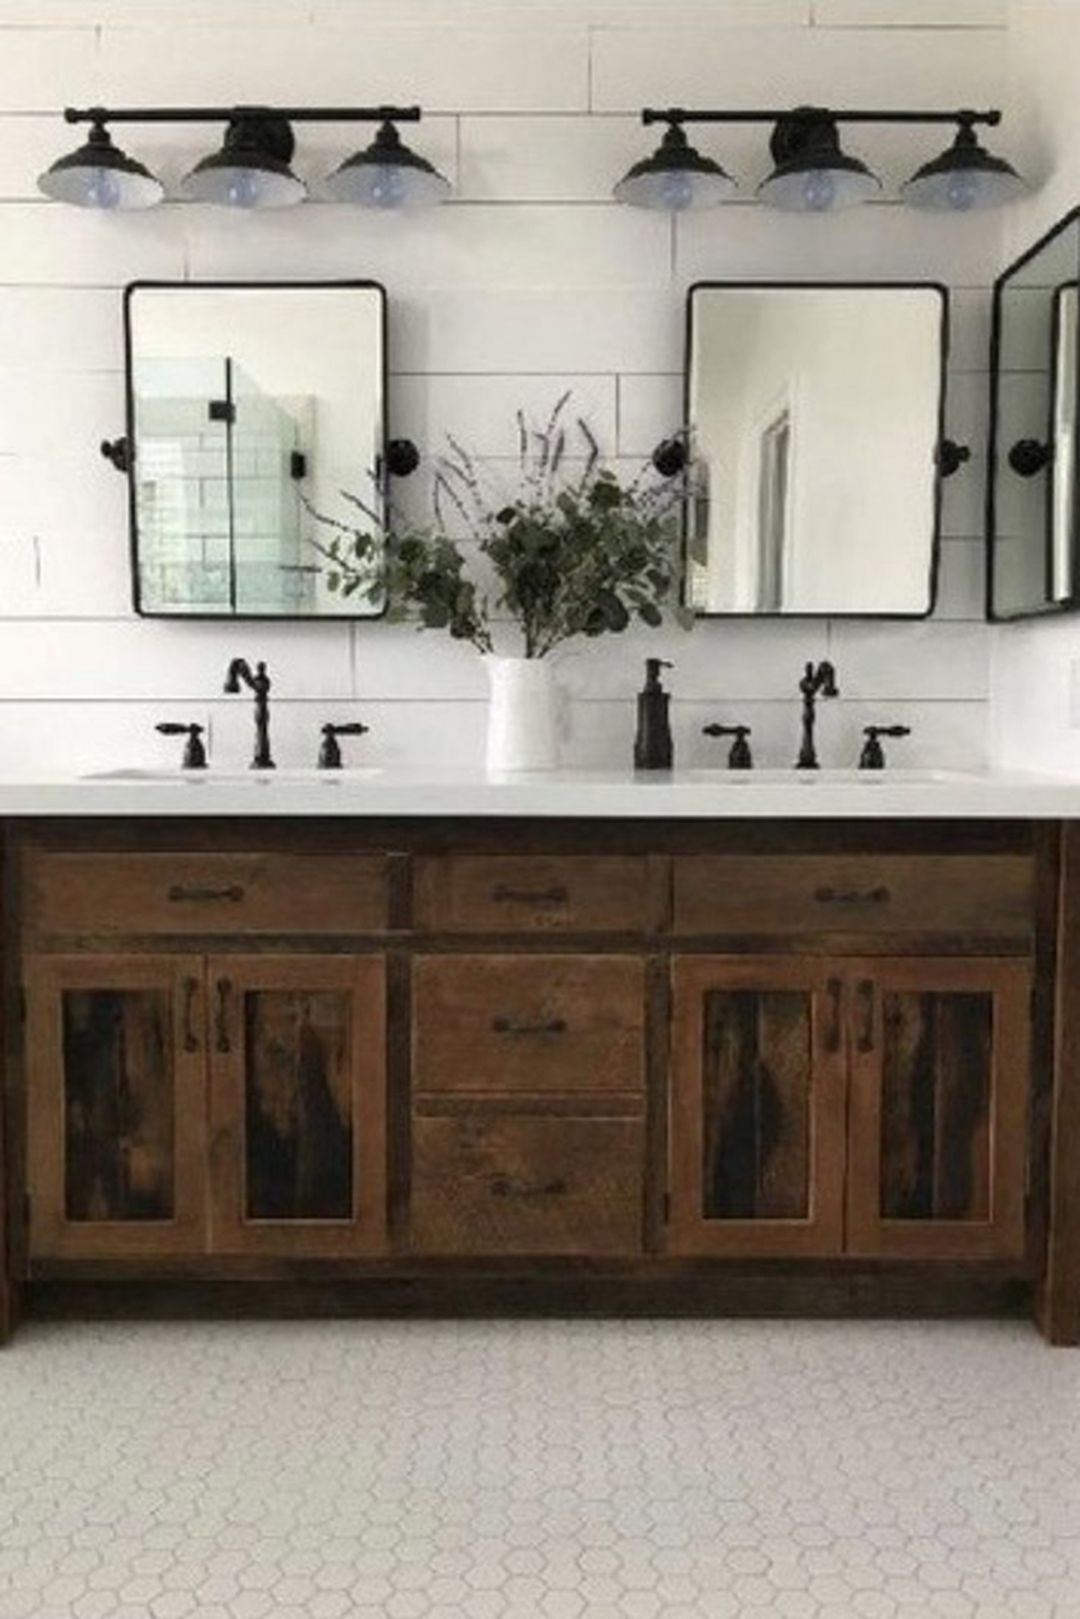 Photo of 37+ Gorgoeus Rustic Bathroom Design Ideas #rusticbathroomdesigns 37+ Gorgoeus Ru…